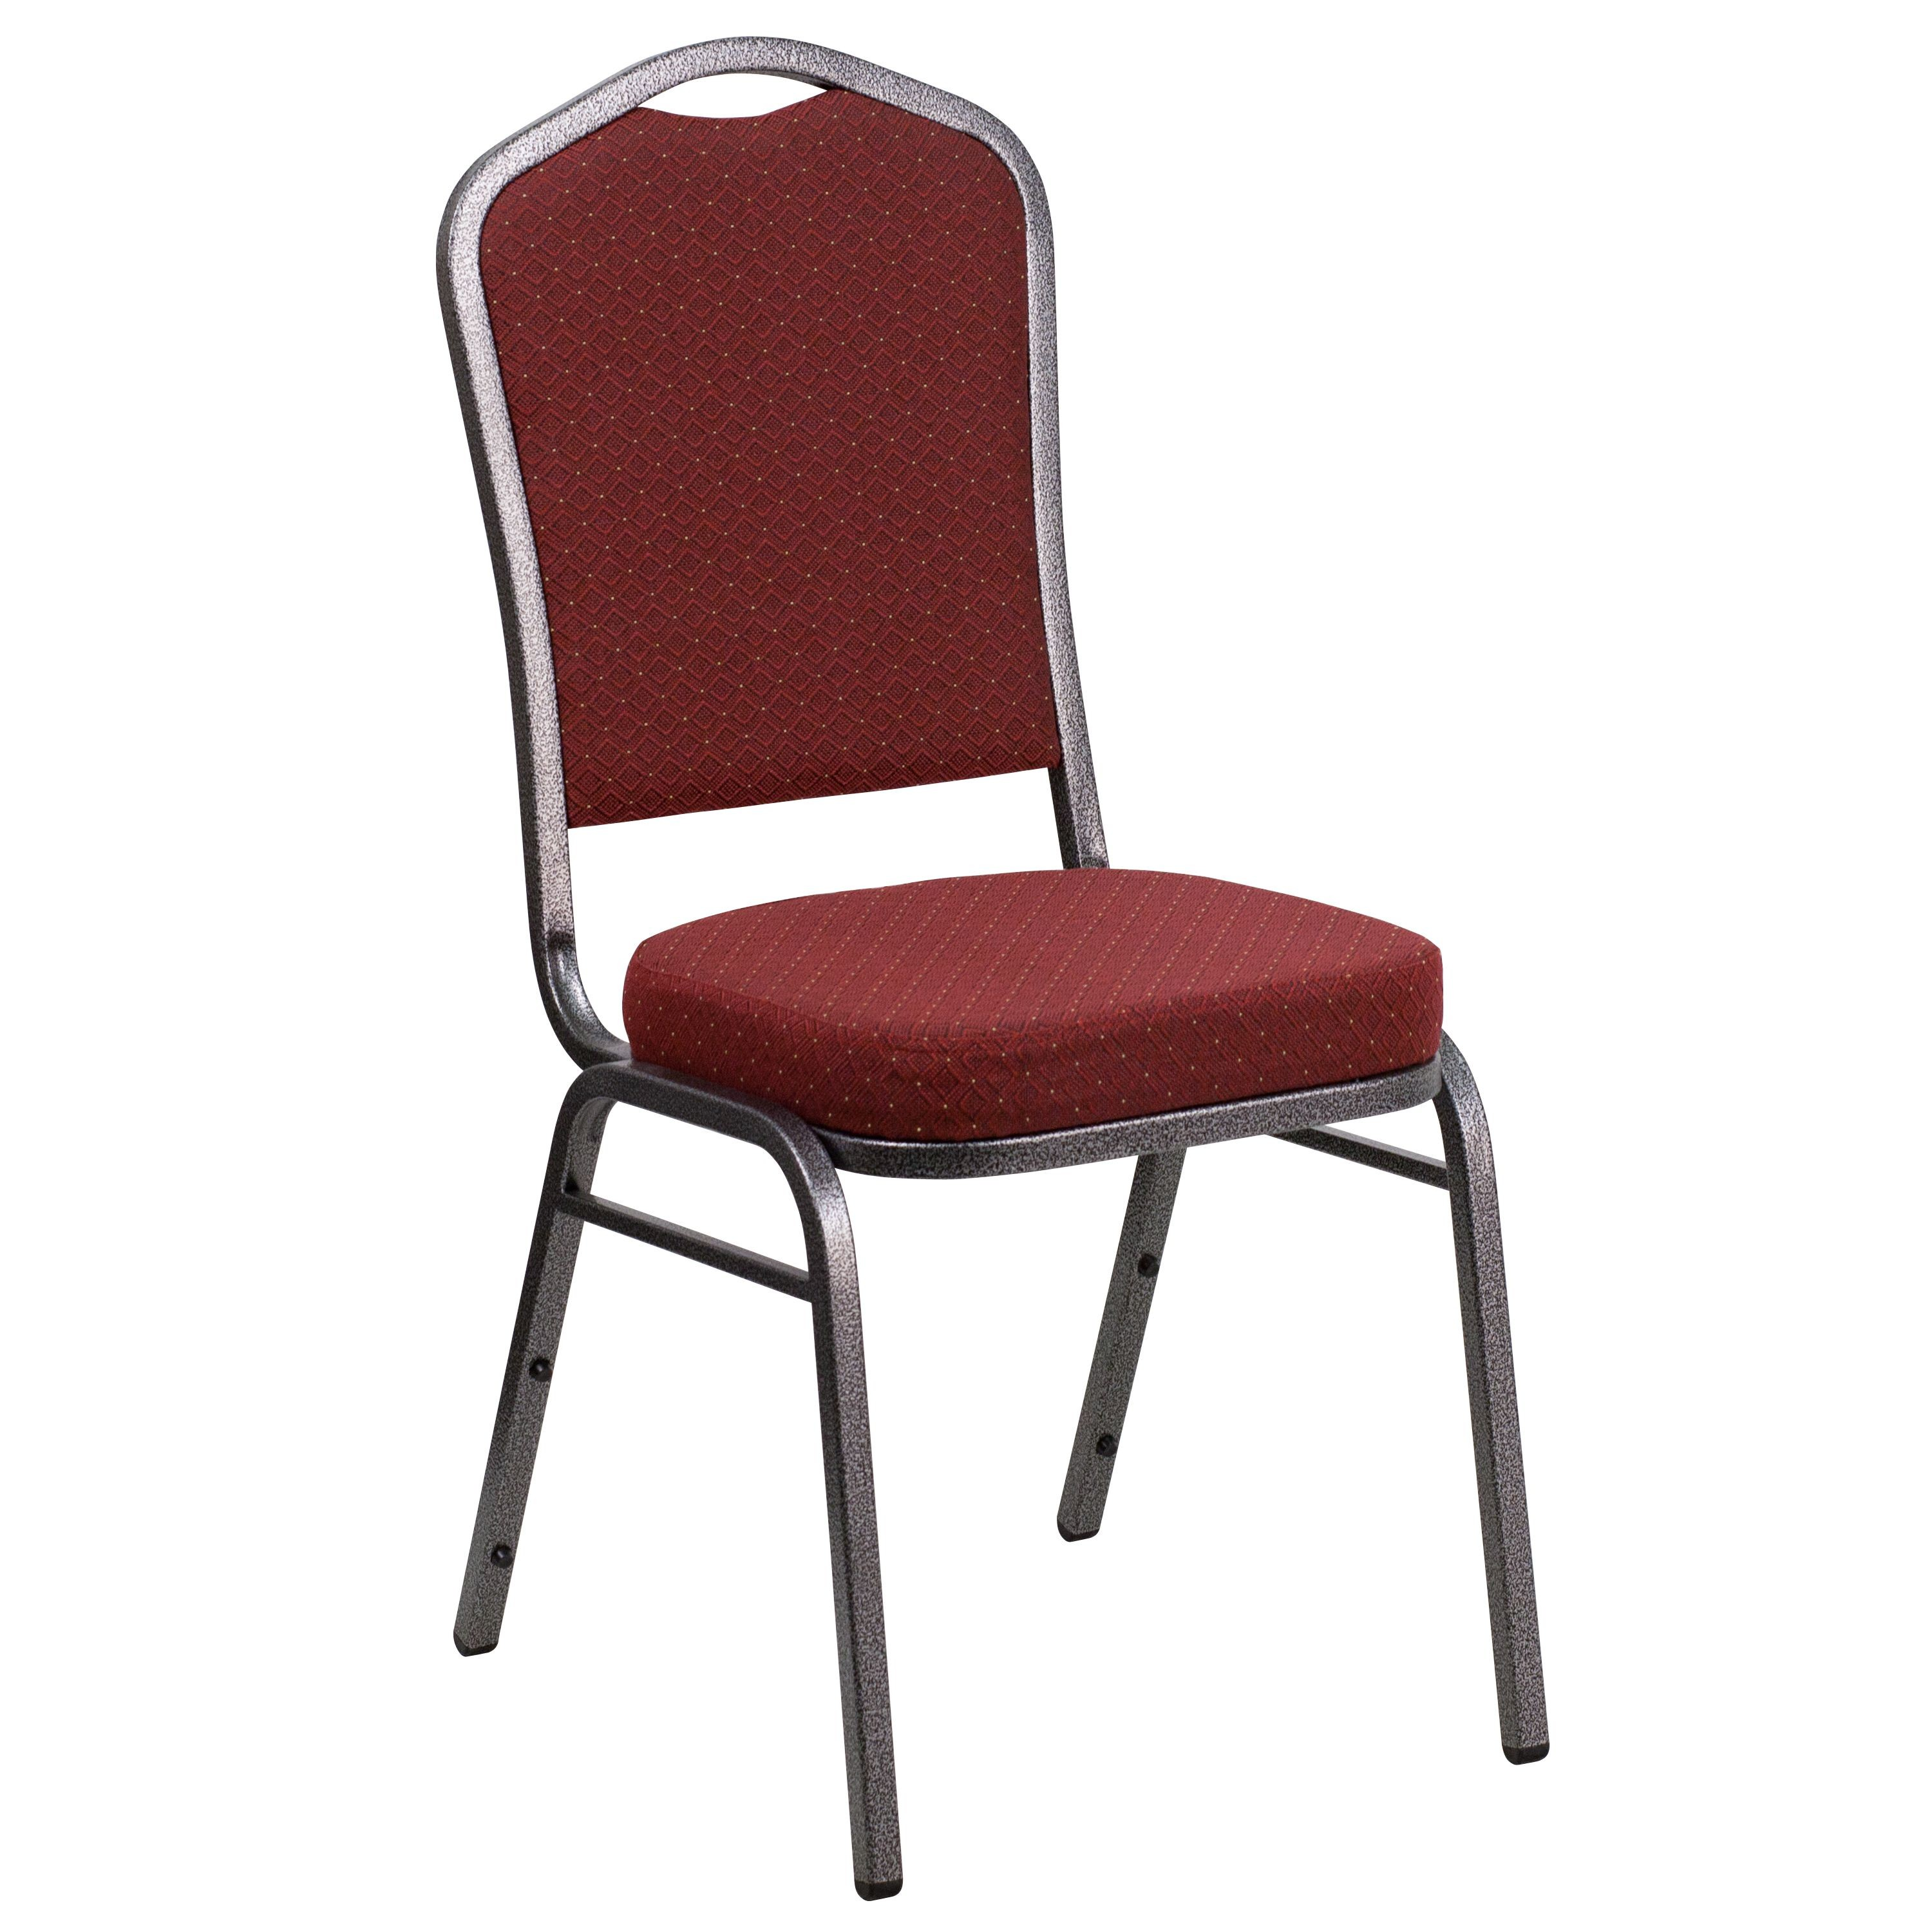 Flash Furniture NG-C01-HTS-2201-SV-GG Light Burgundy Patterned Fabric Banquet Chairs with Silver Vein Frame